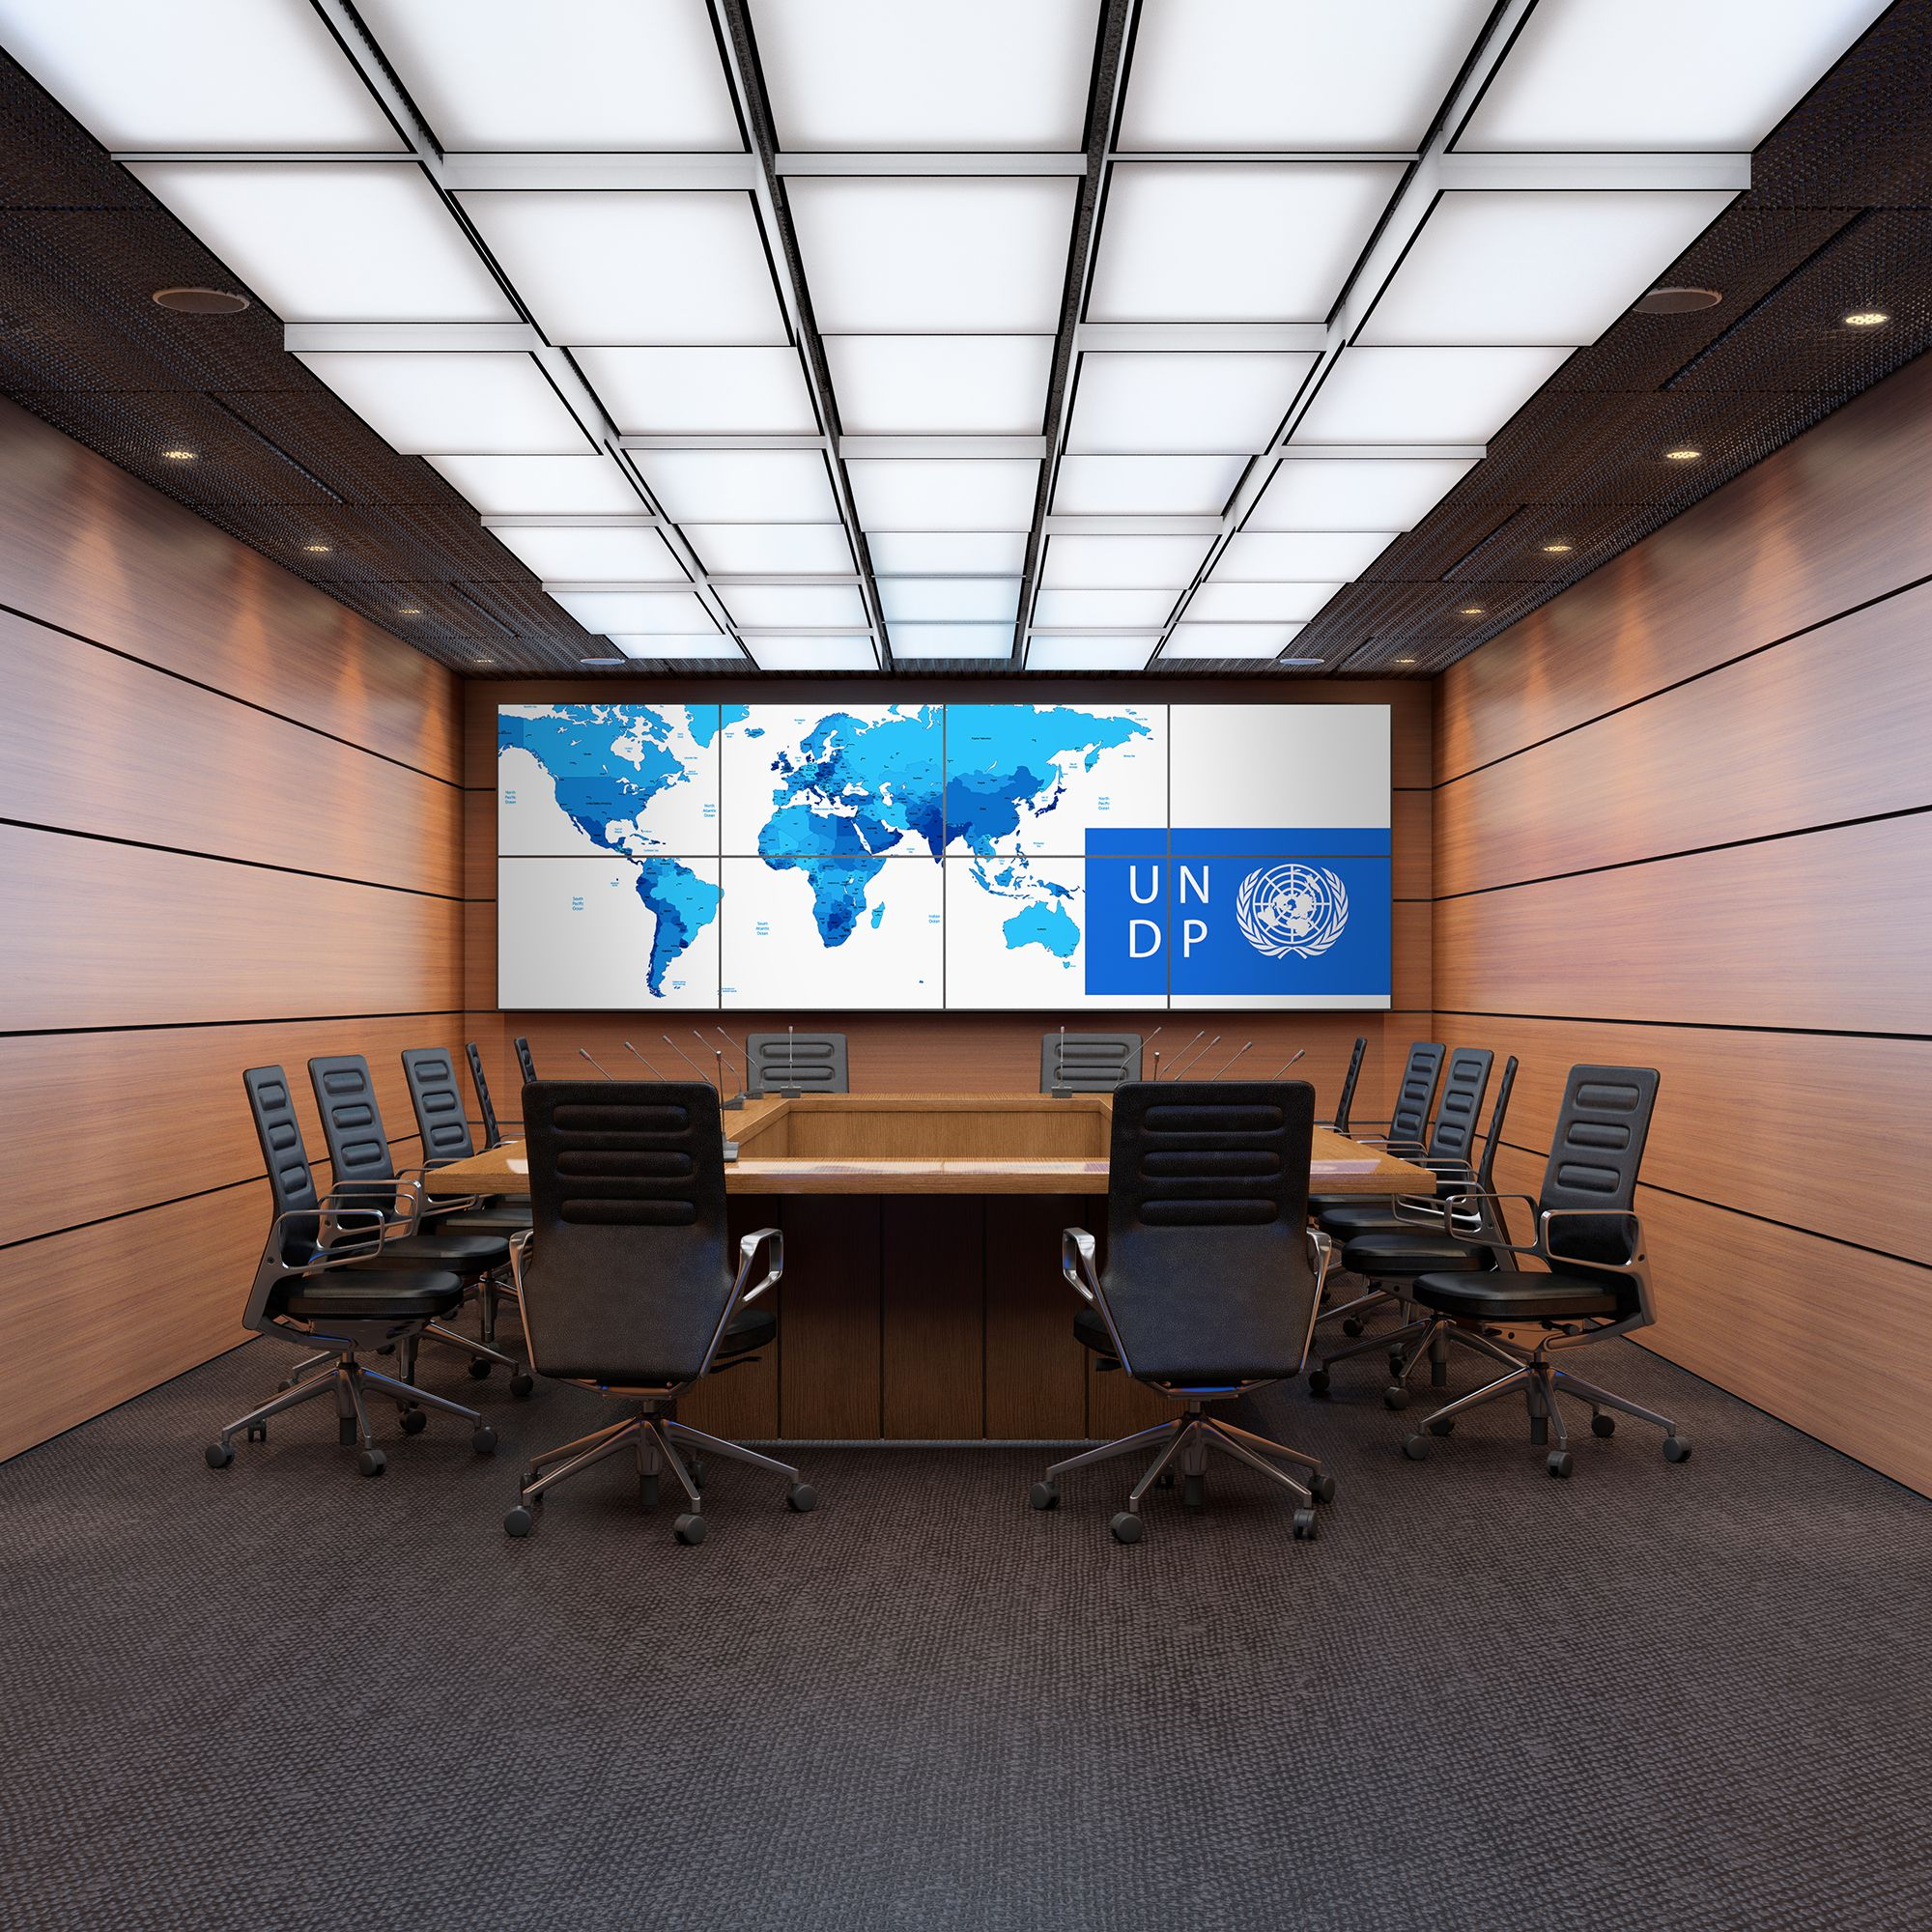 Our video wall is designed and manufactured to support the